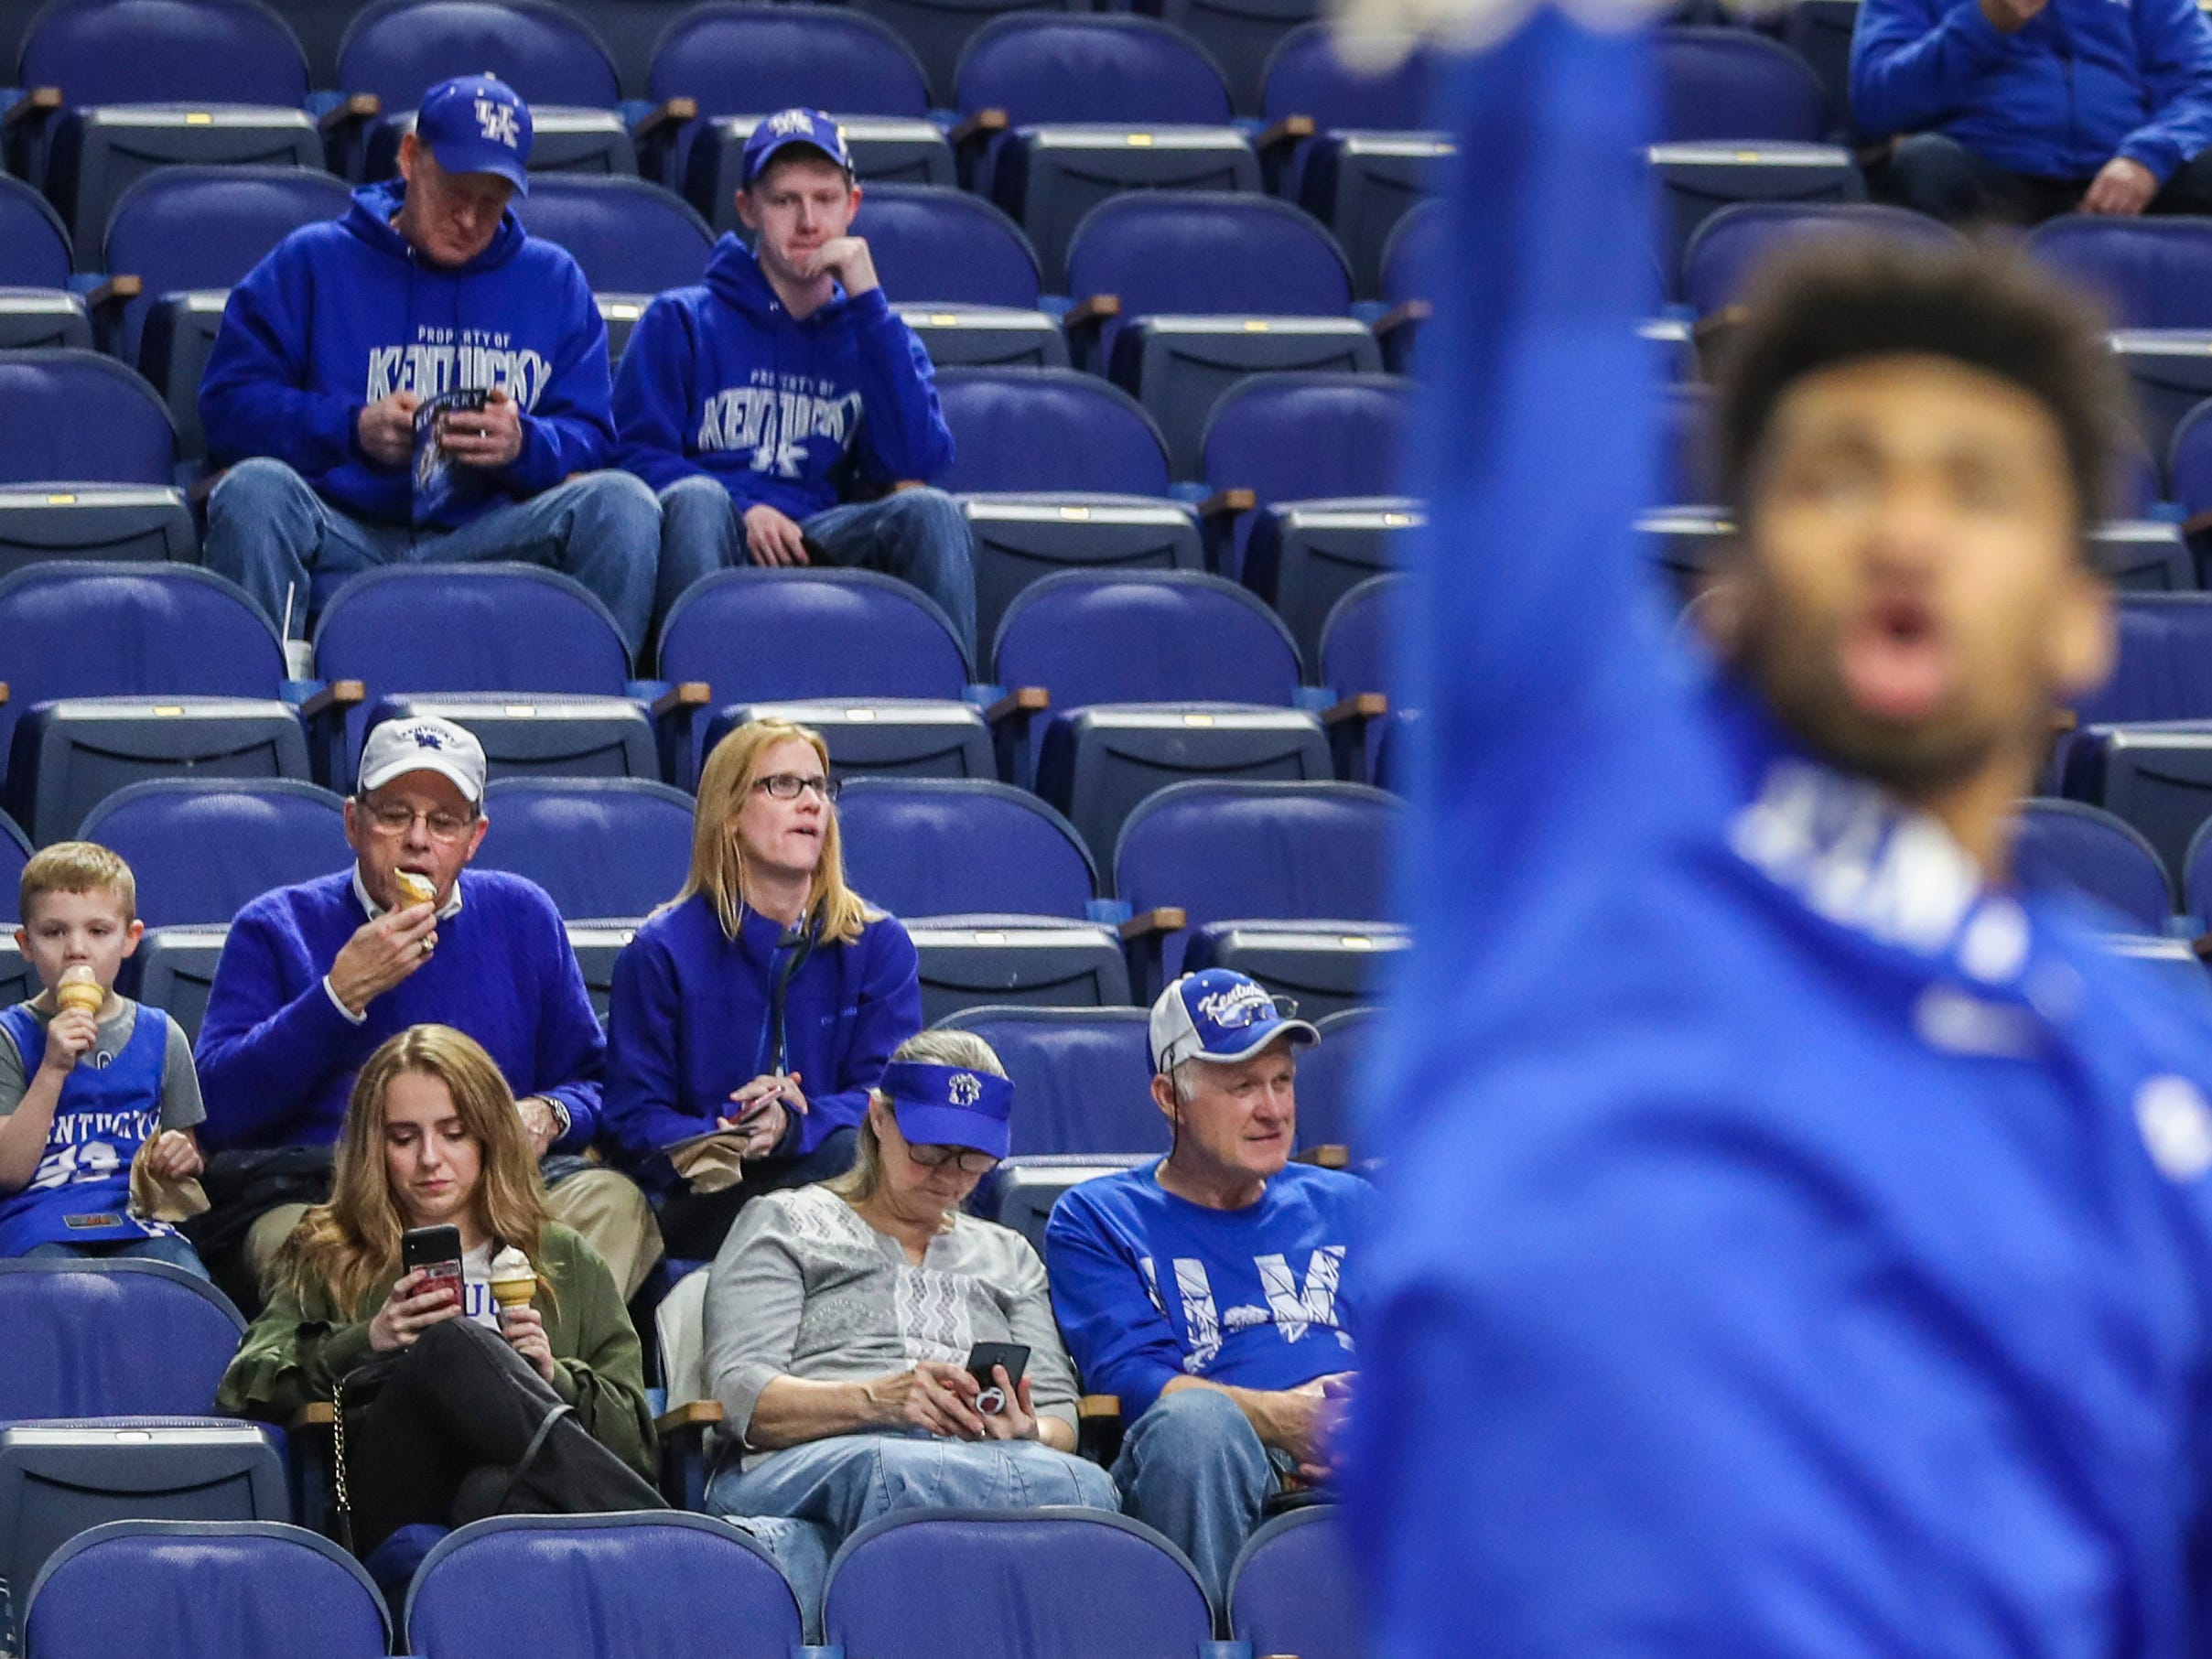 Kentucky fans get ready for the game against South Carolina Tuesday night at Rupp Arena. Feb. 5, 2019